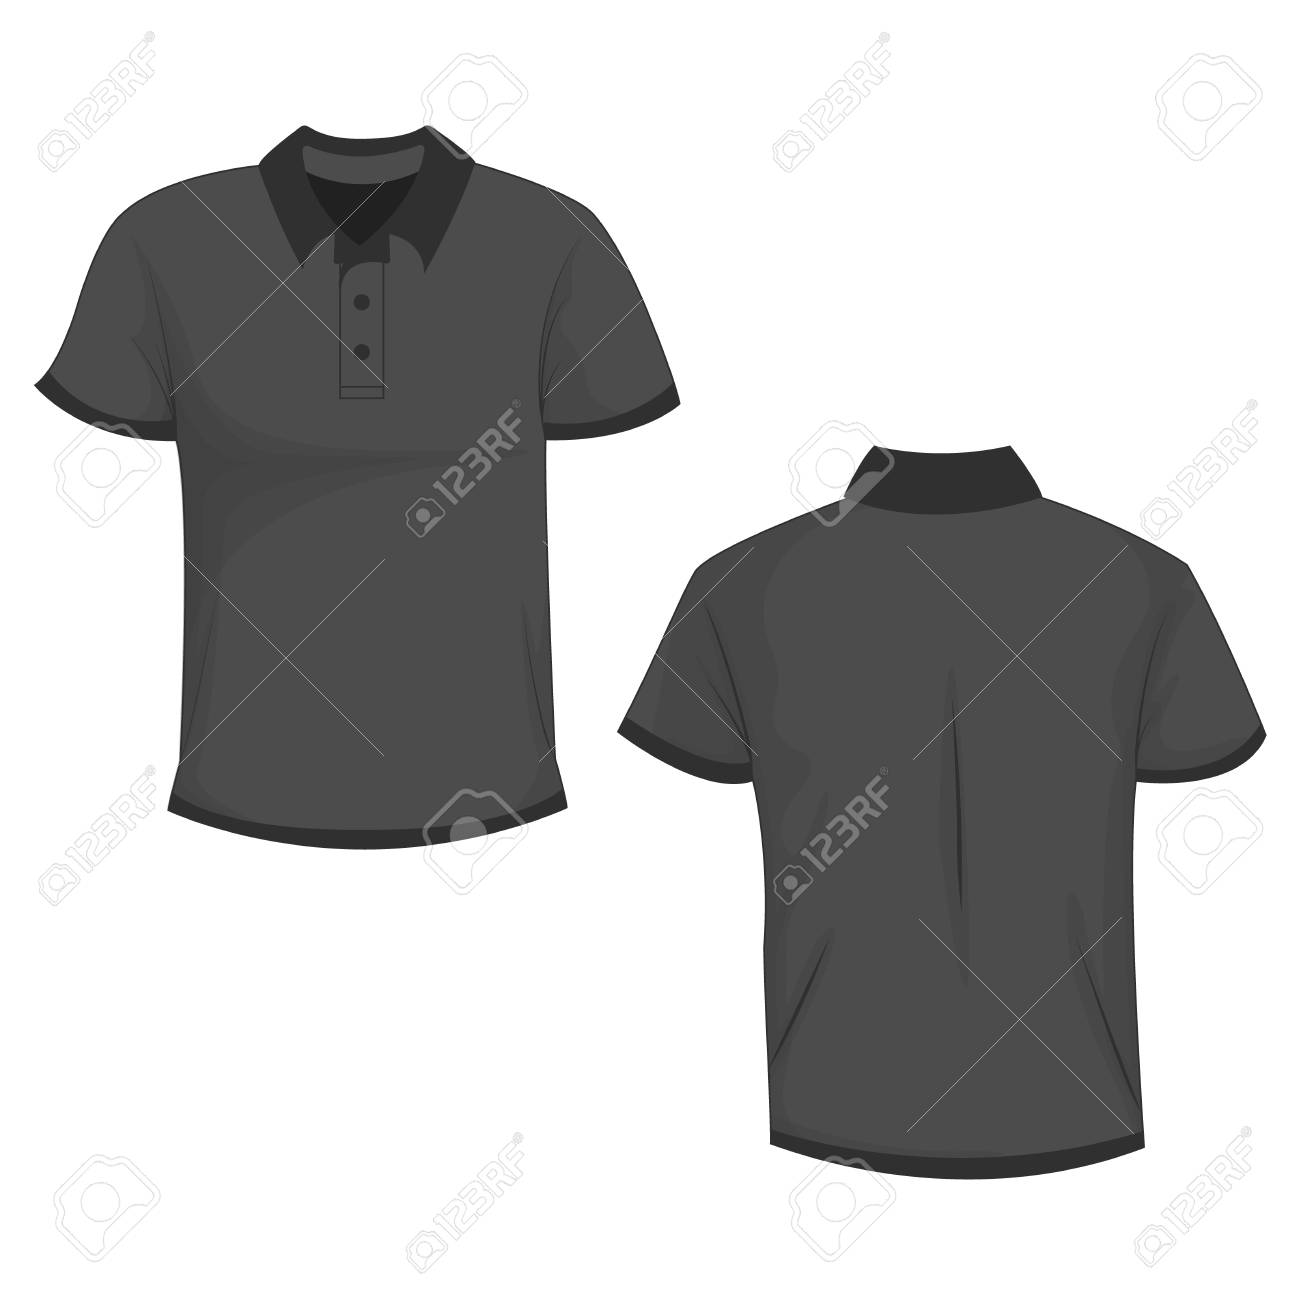 e7f992f64 Black / Dark Gray Polo T-shirt Mock Up, Front And Back View ...